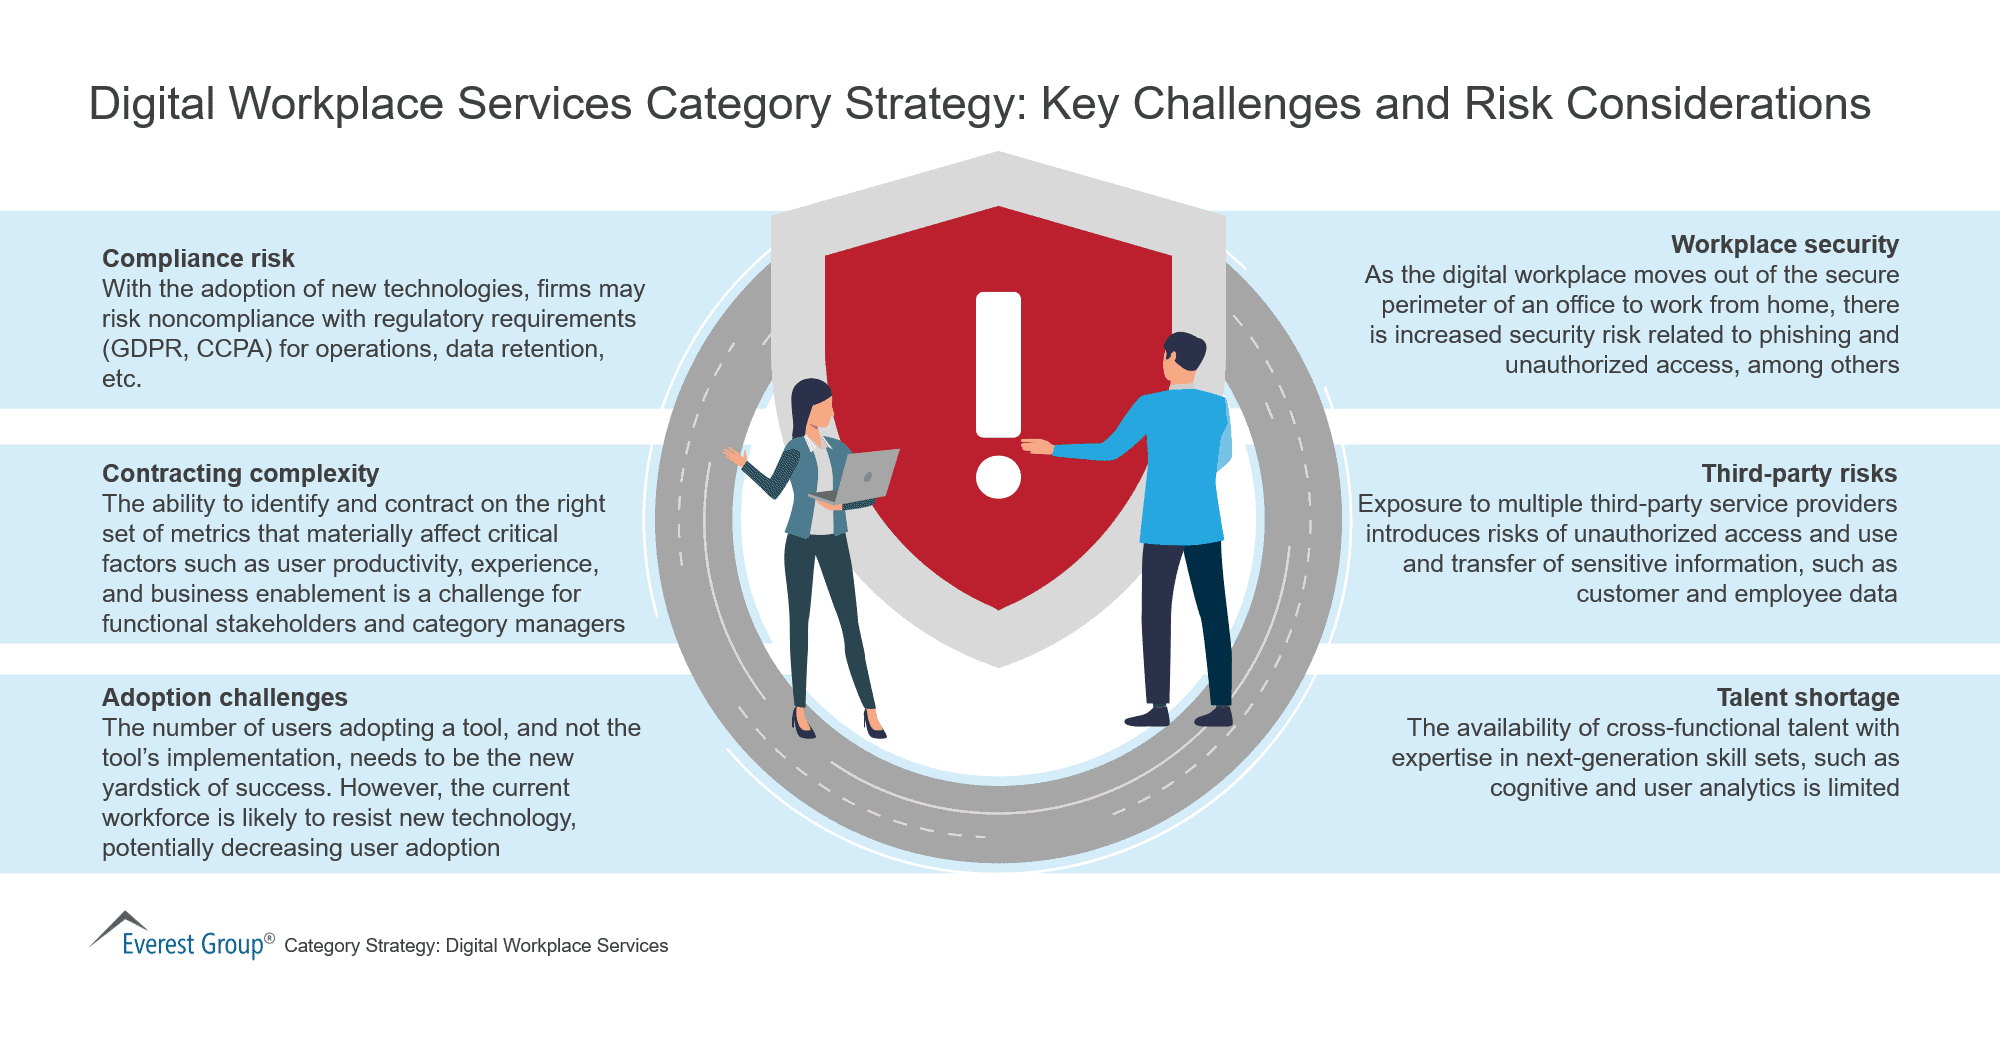 Digital Workplace Services Category Strategy-Key Challenges and Risk Considerations